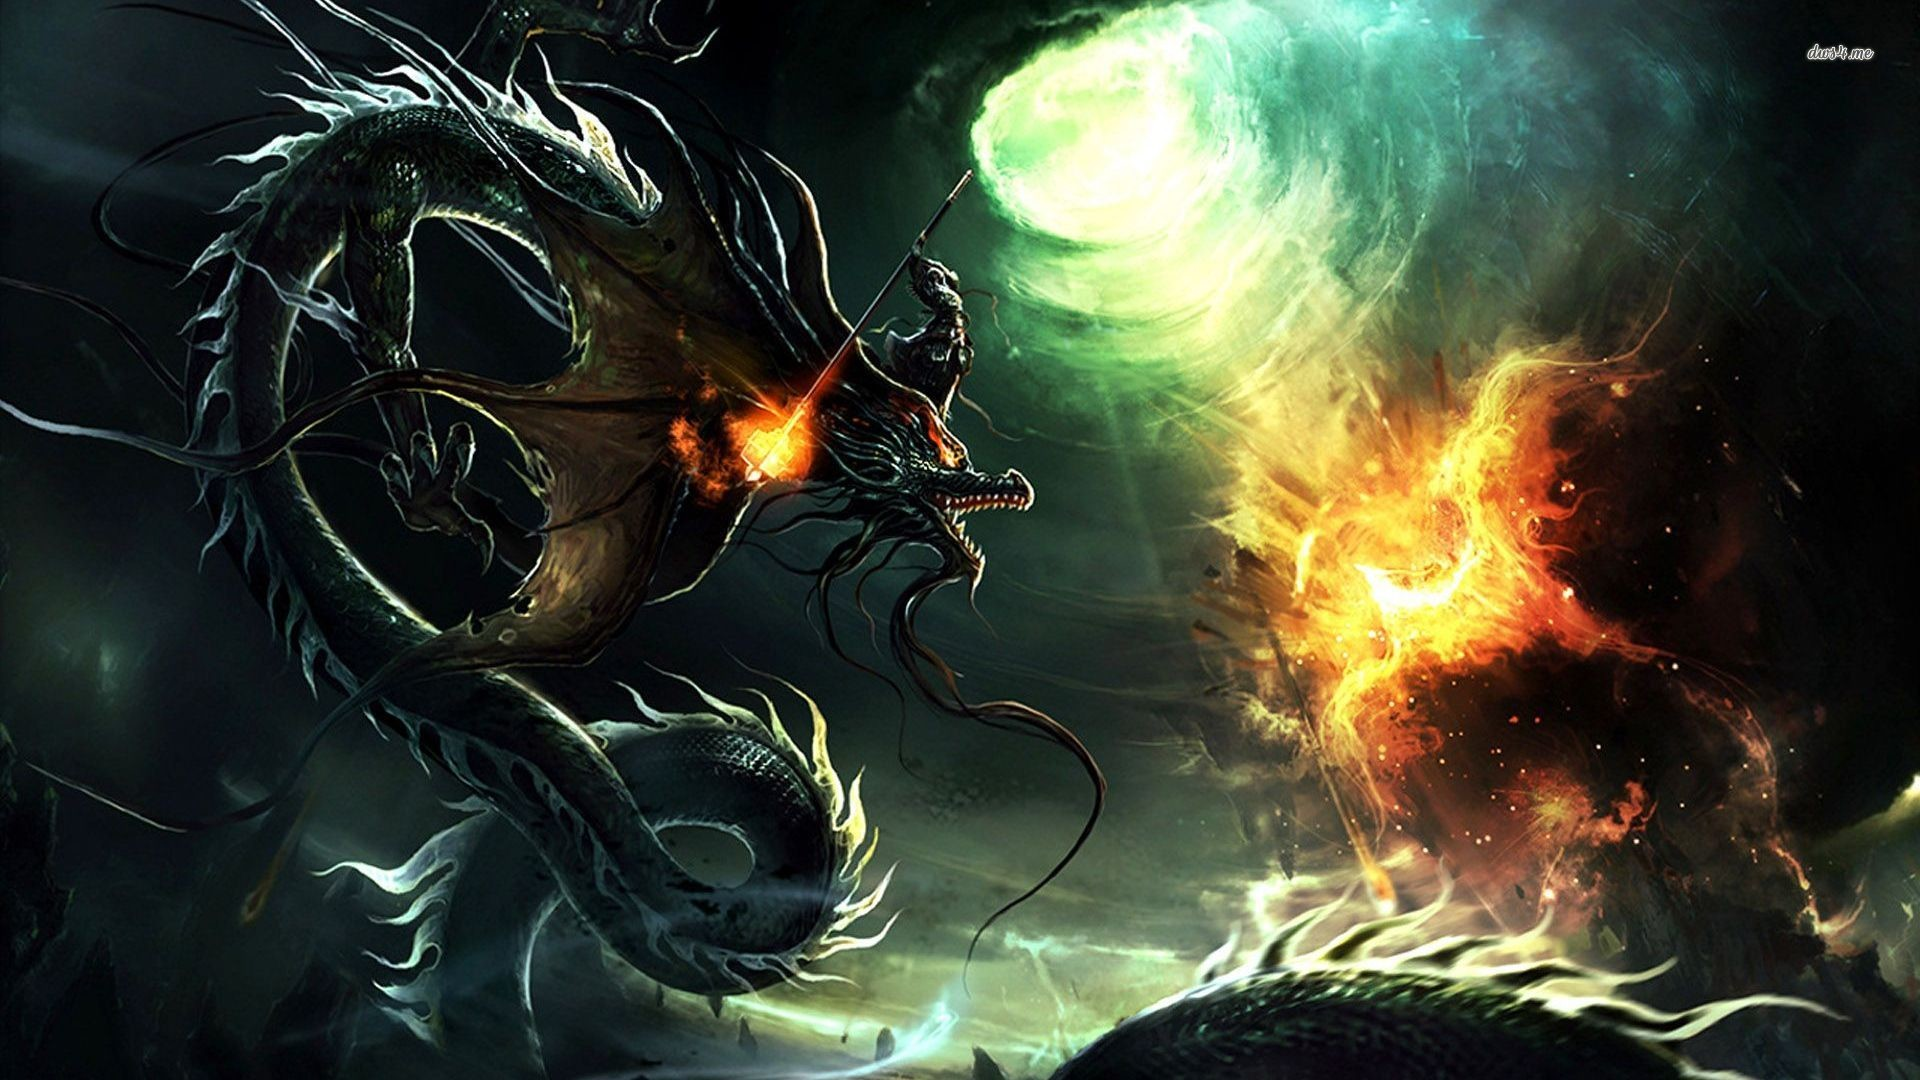 1920x1080 Dragon vs Phoenix, two out of Share Your Wallpaper - Page 97